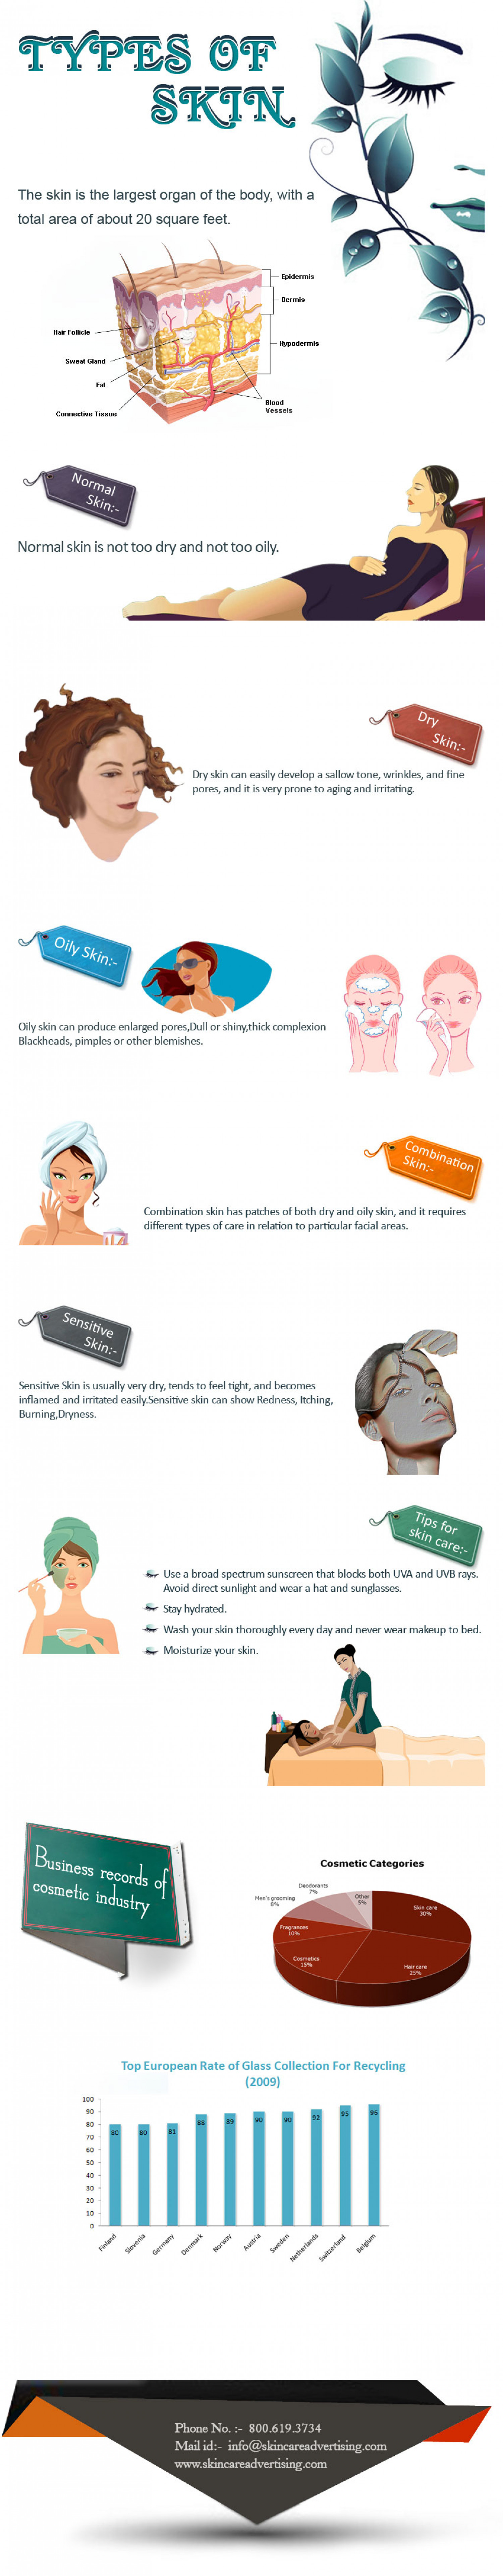 Types Of Skin Infographic